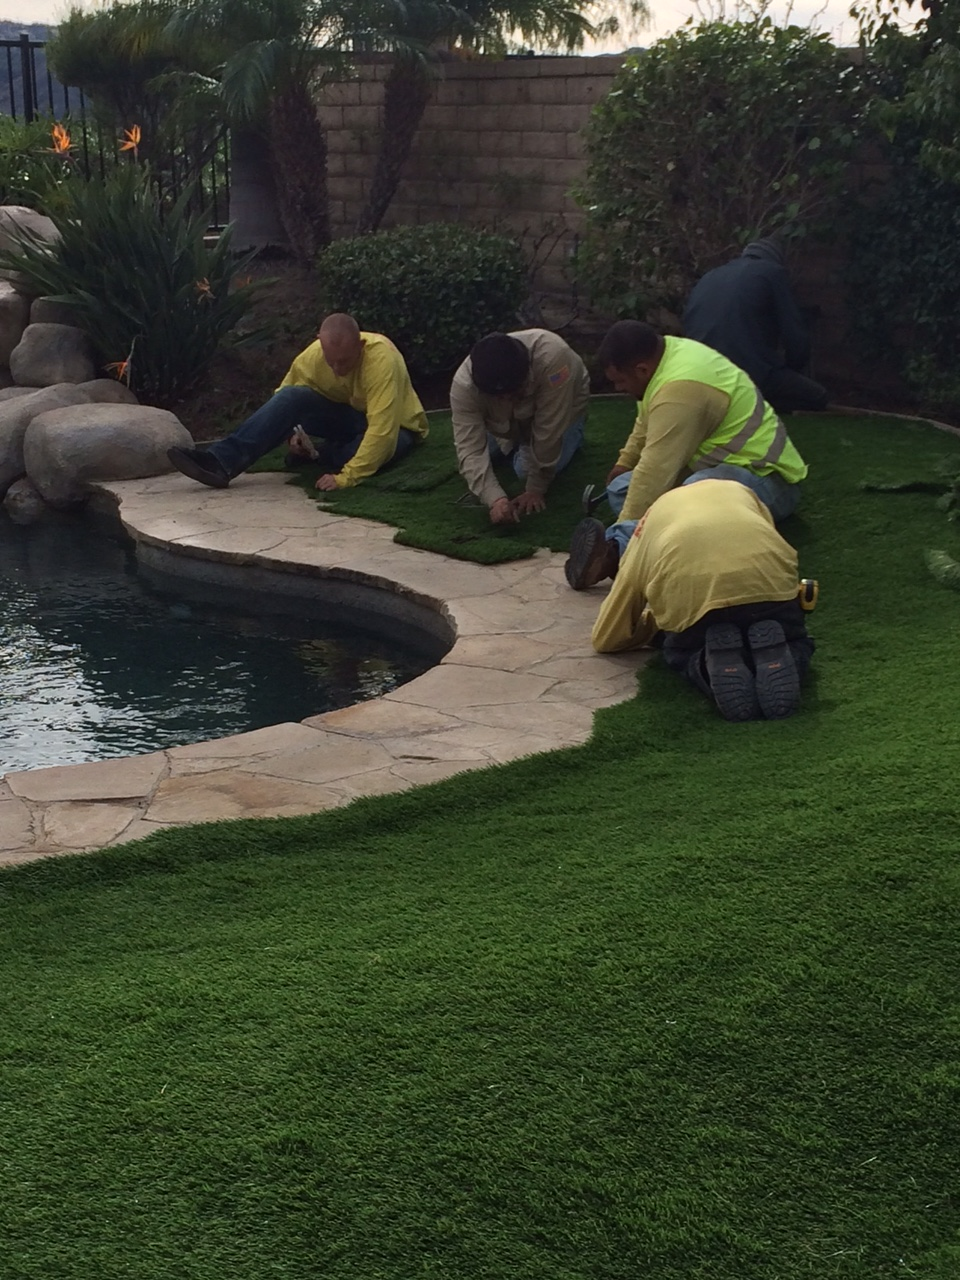 Artificial turf the guys installing it